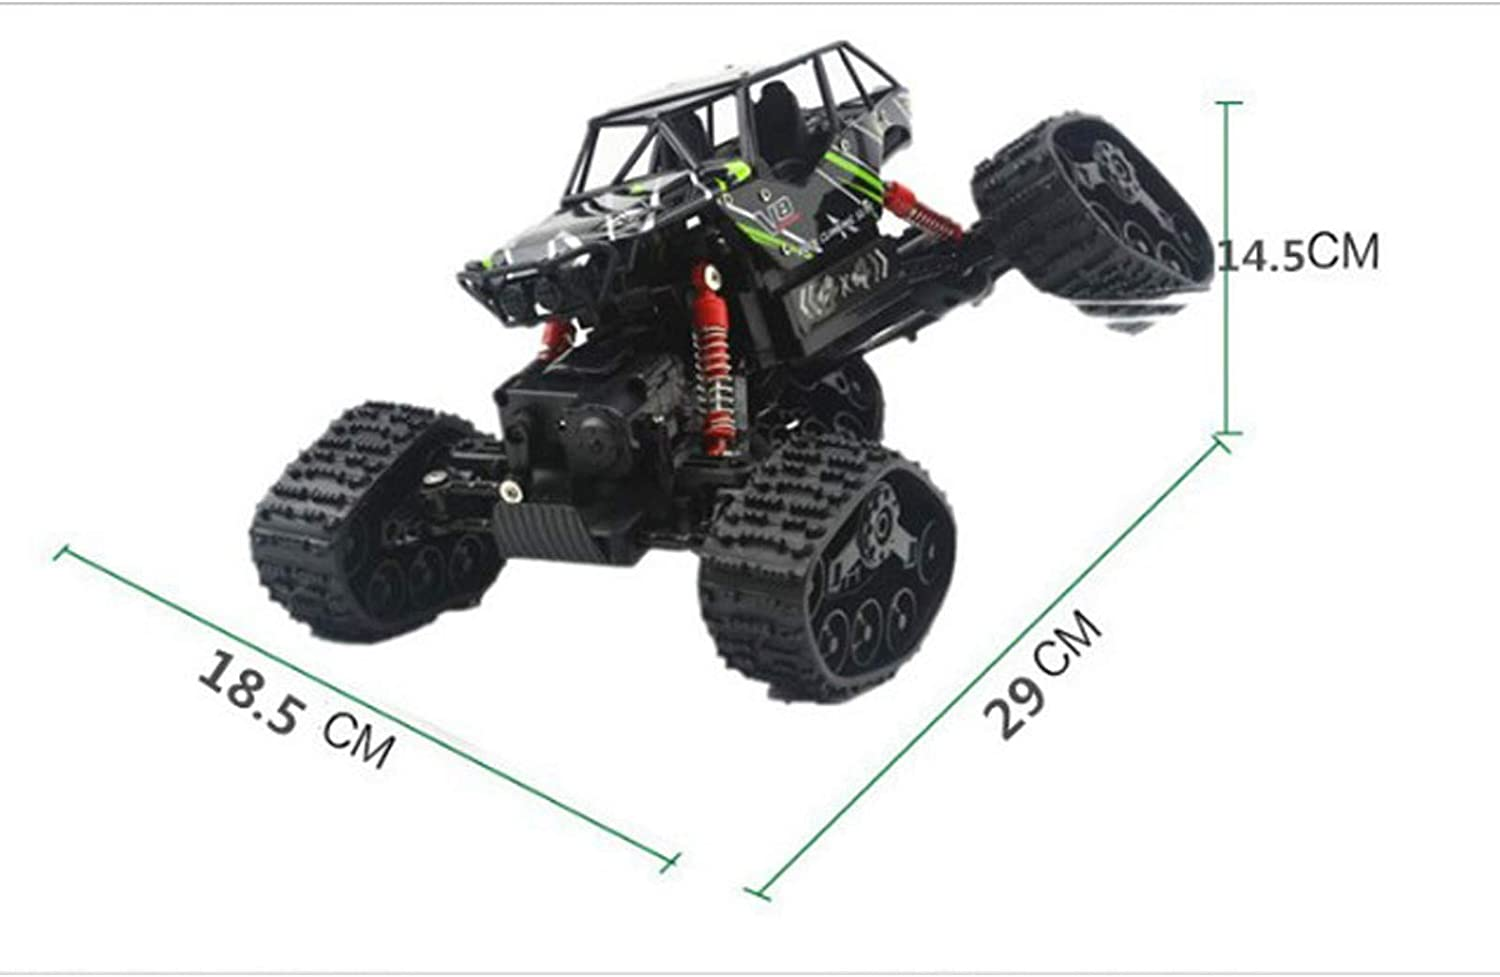 Gao Snow Climbing Offroad Fourwheel Drive Highspeed Wireless Remote Control Car